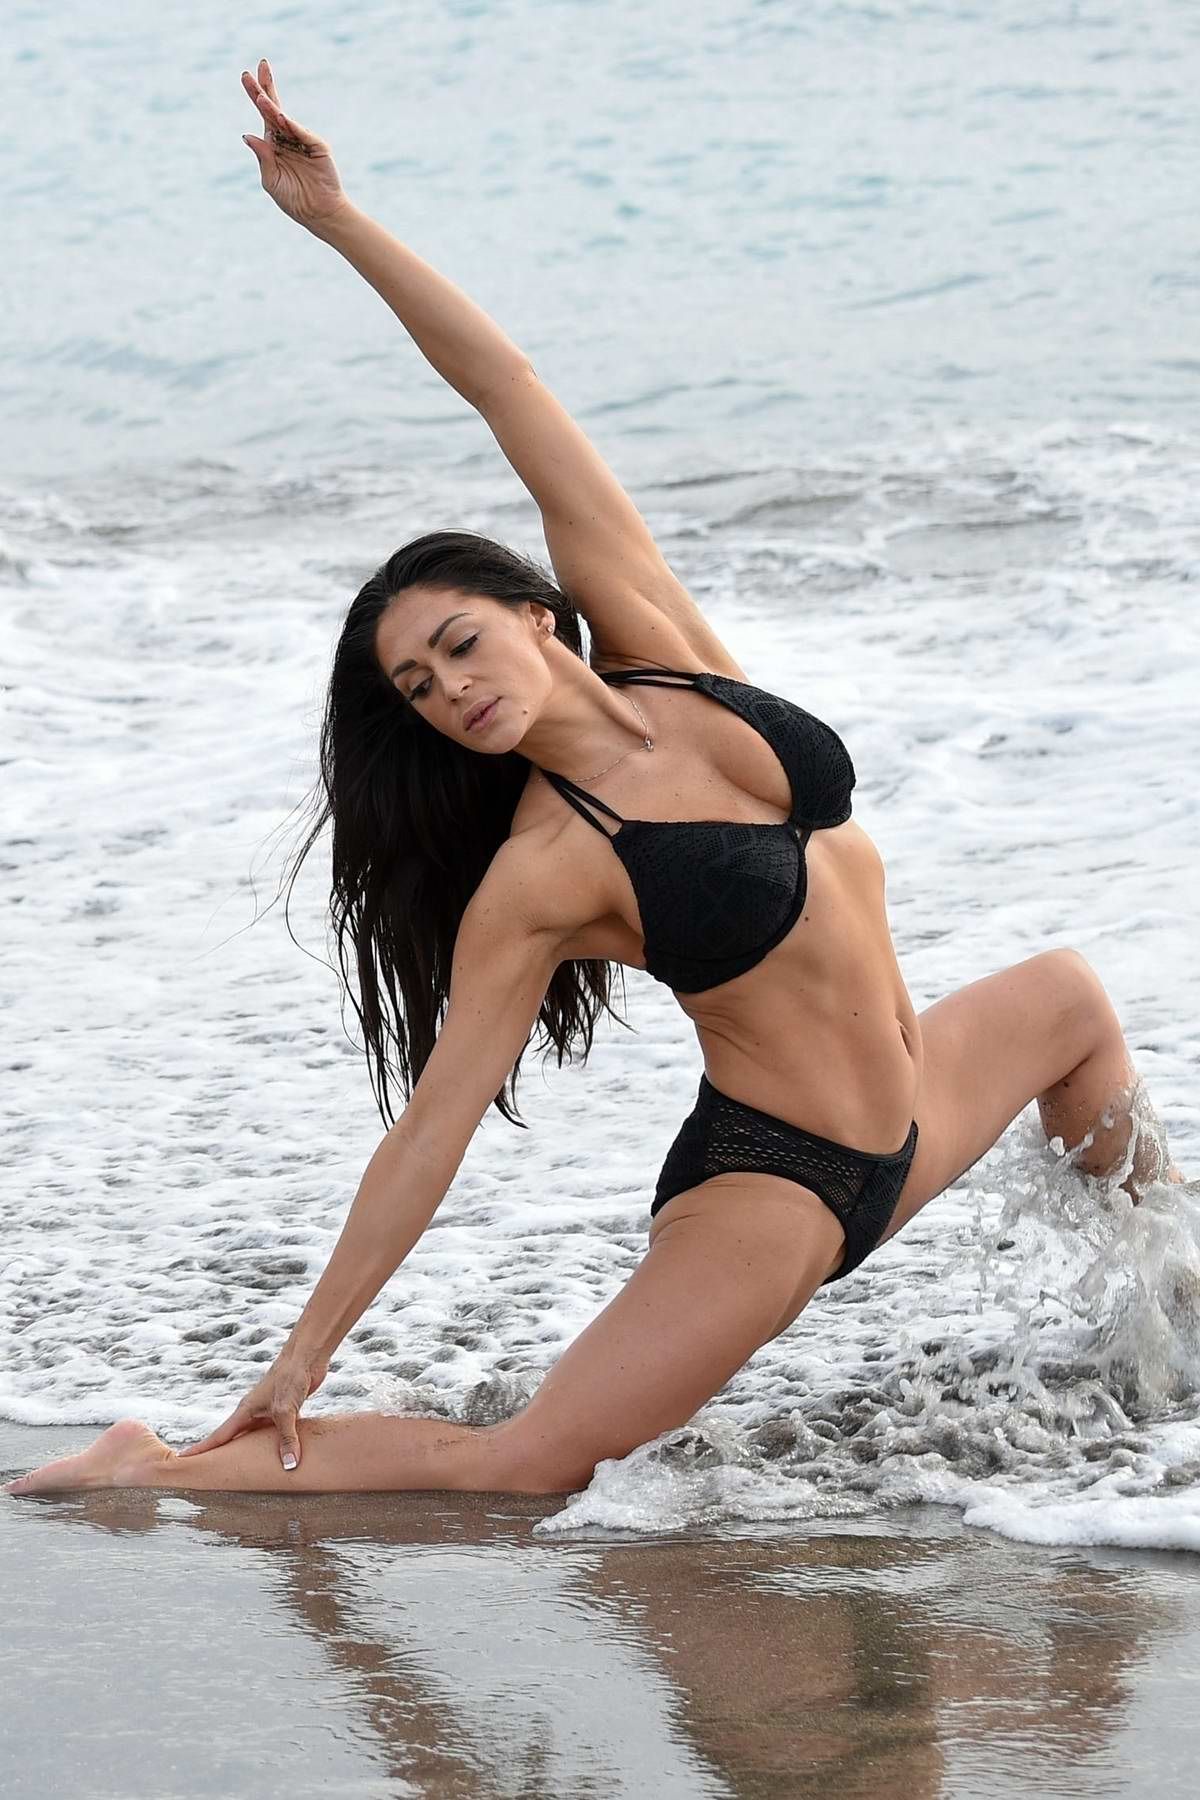 Casey Batchelor shows off her flexible physique in a black bikini while filming for her fitness app Yoga Blitz in in Tenerife, Spain